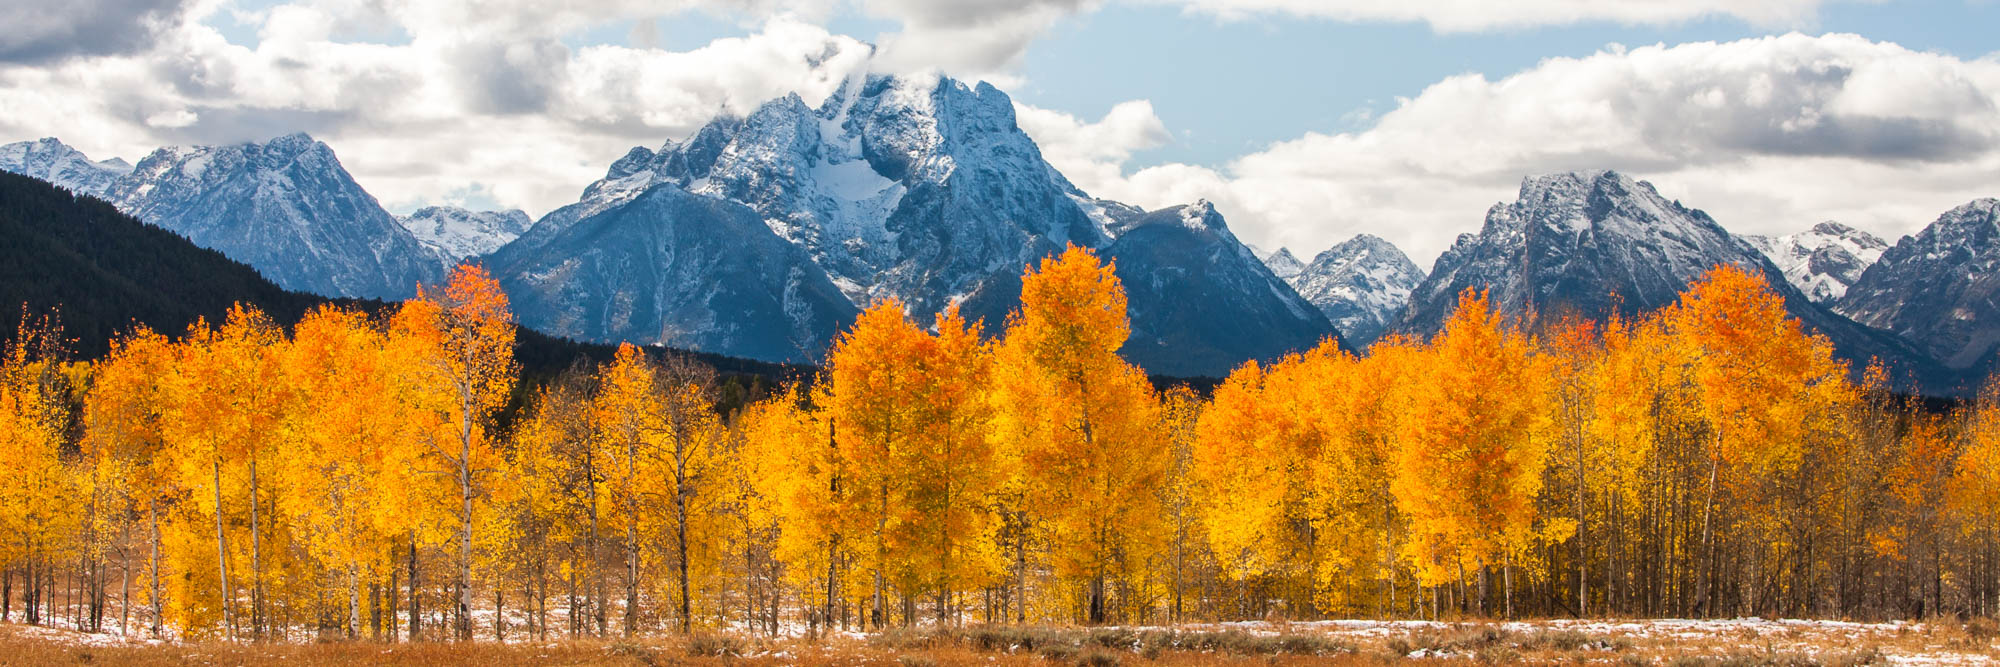 rocky mountains and orange aspens